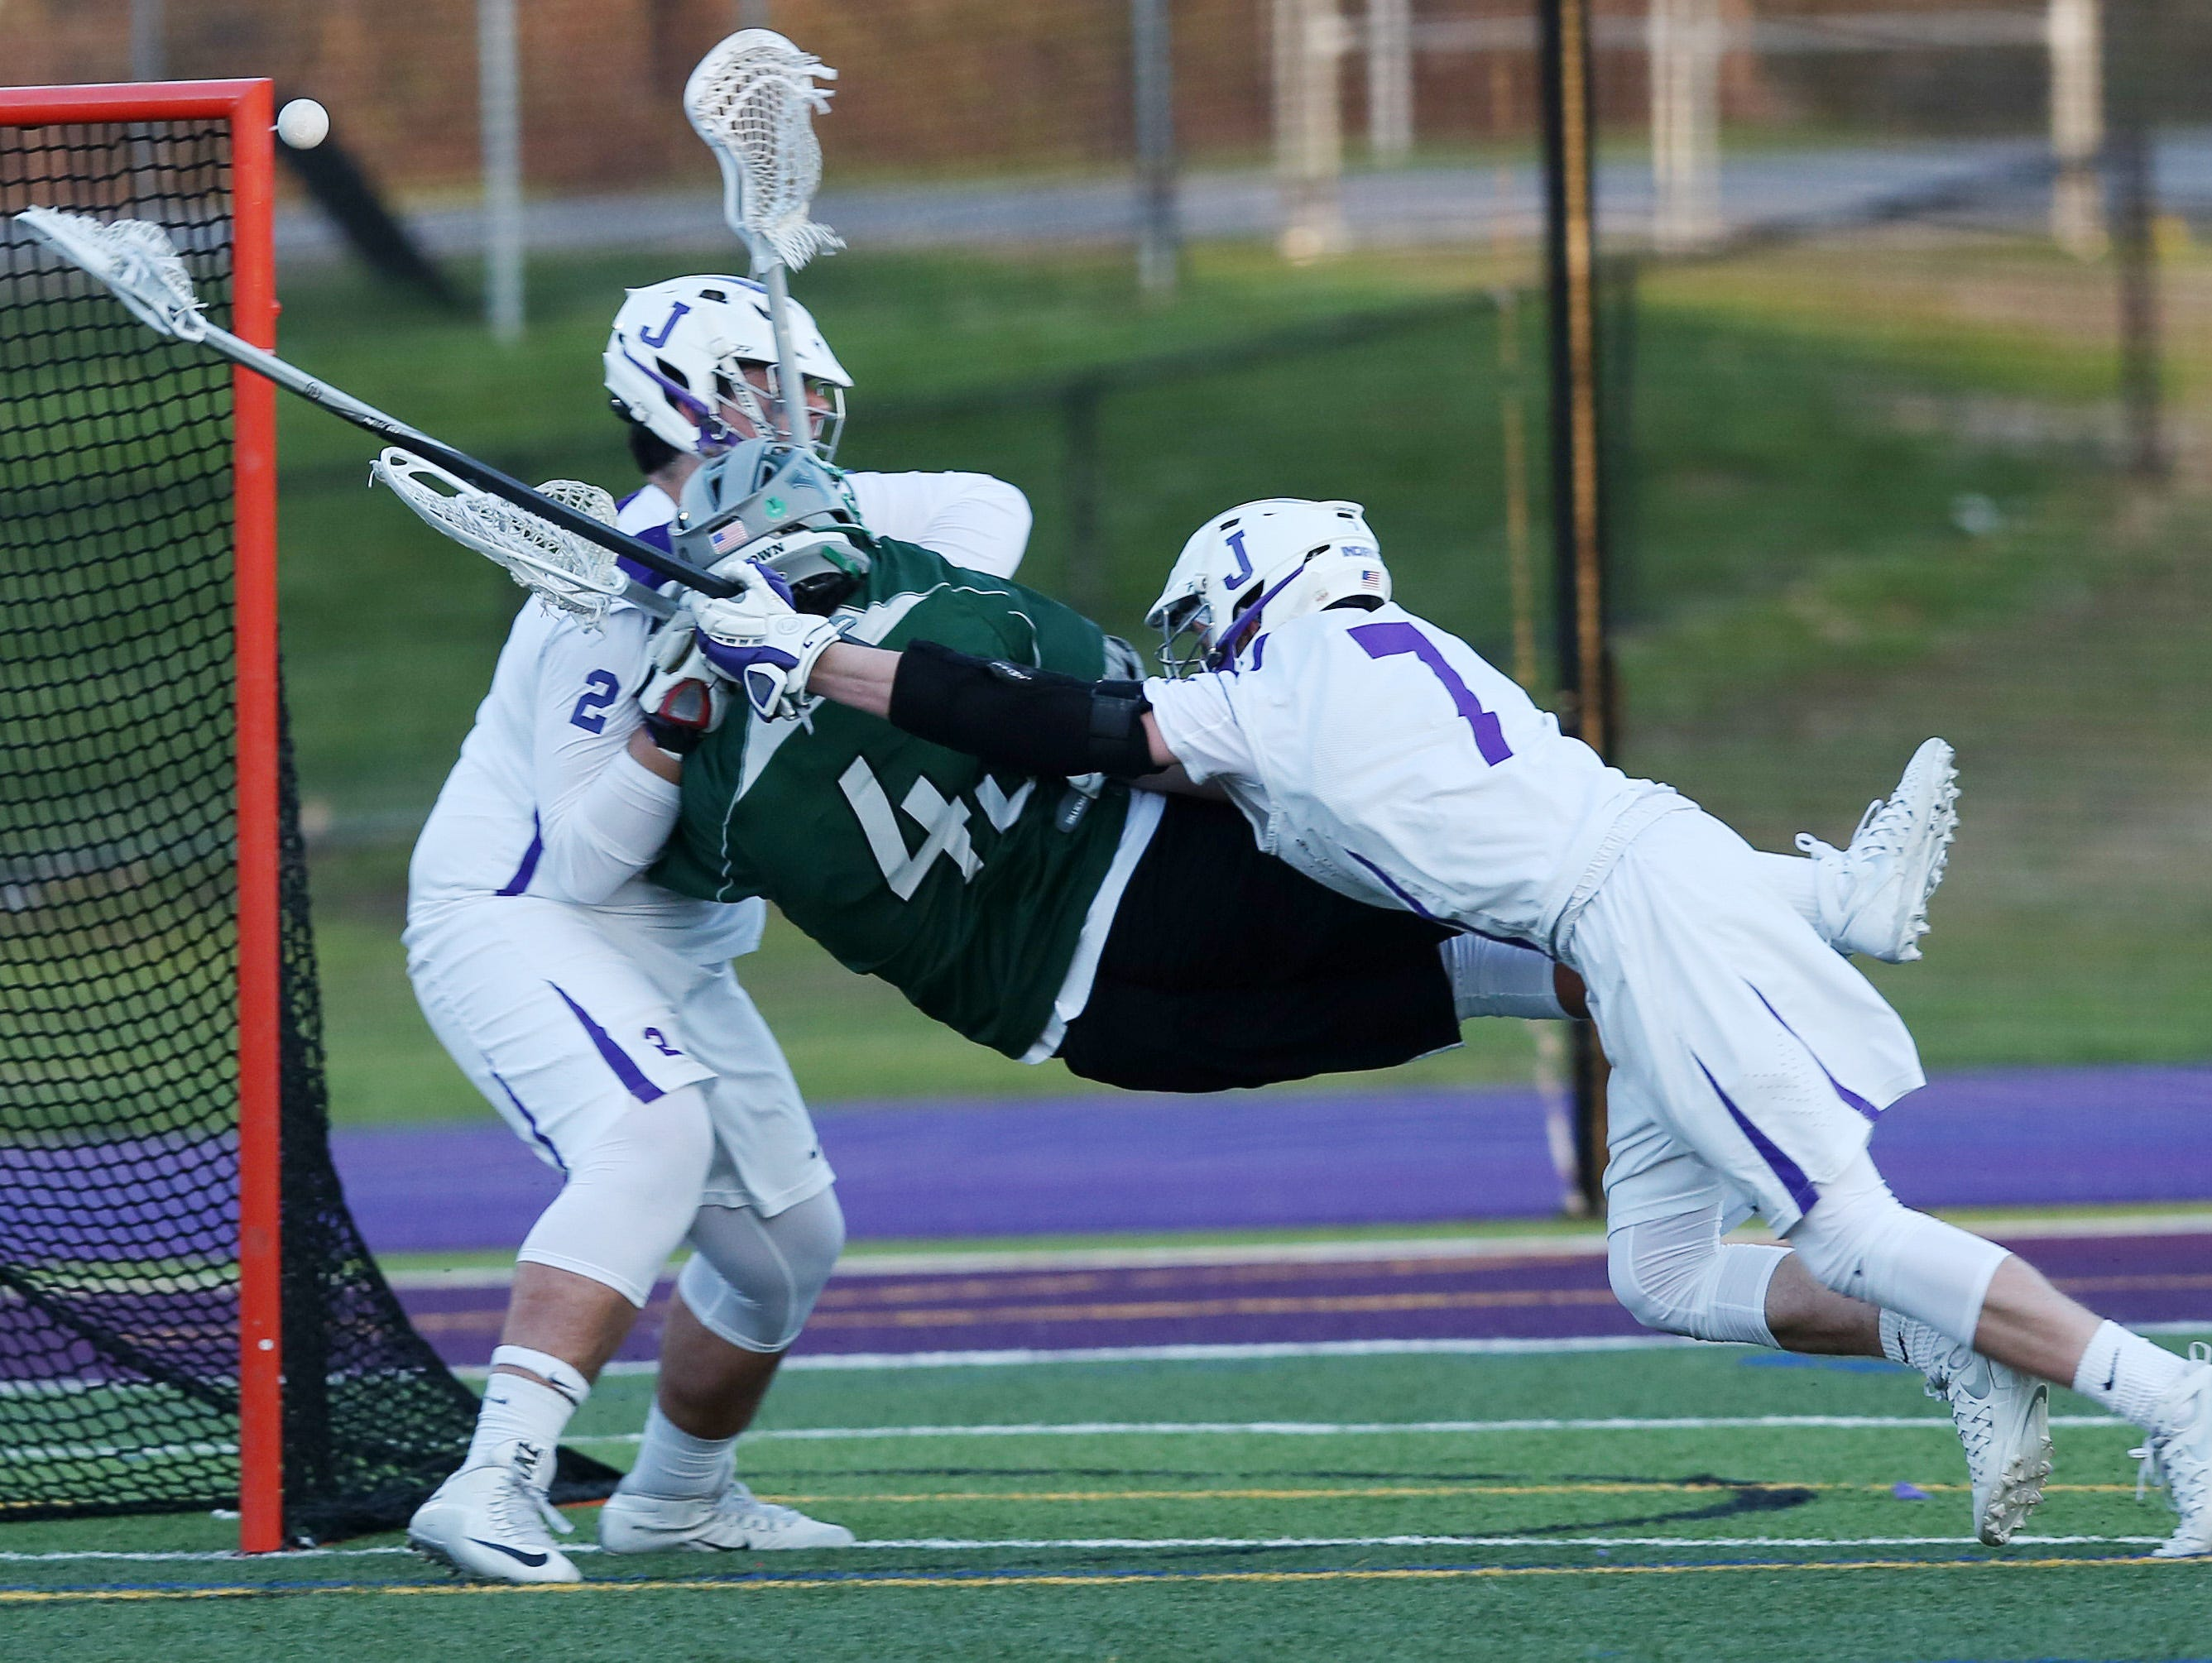 Yorktown's Justin Cavallo (43) gets hit by John Jay's Shahe Katchadurian (2) and Jake Murphy (7) as he gets off a shot that went for a second half goal breaking a 5-5 tie, during a boys lacrosse game at John Jay High School in Cross River April 14, 2016. Yorktown won the game 9-7.